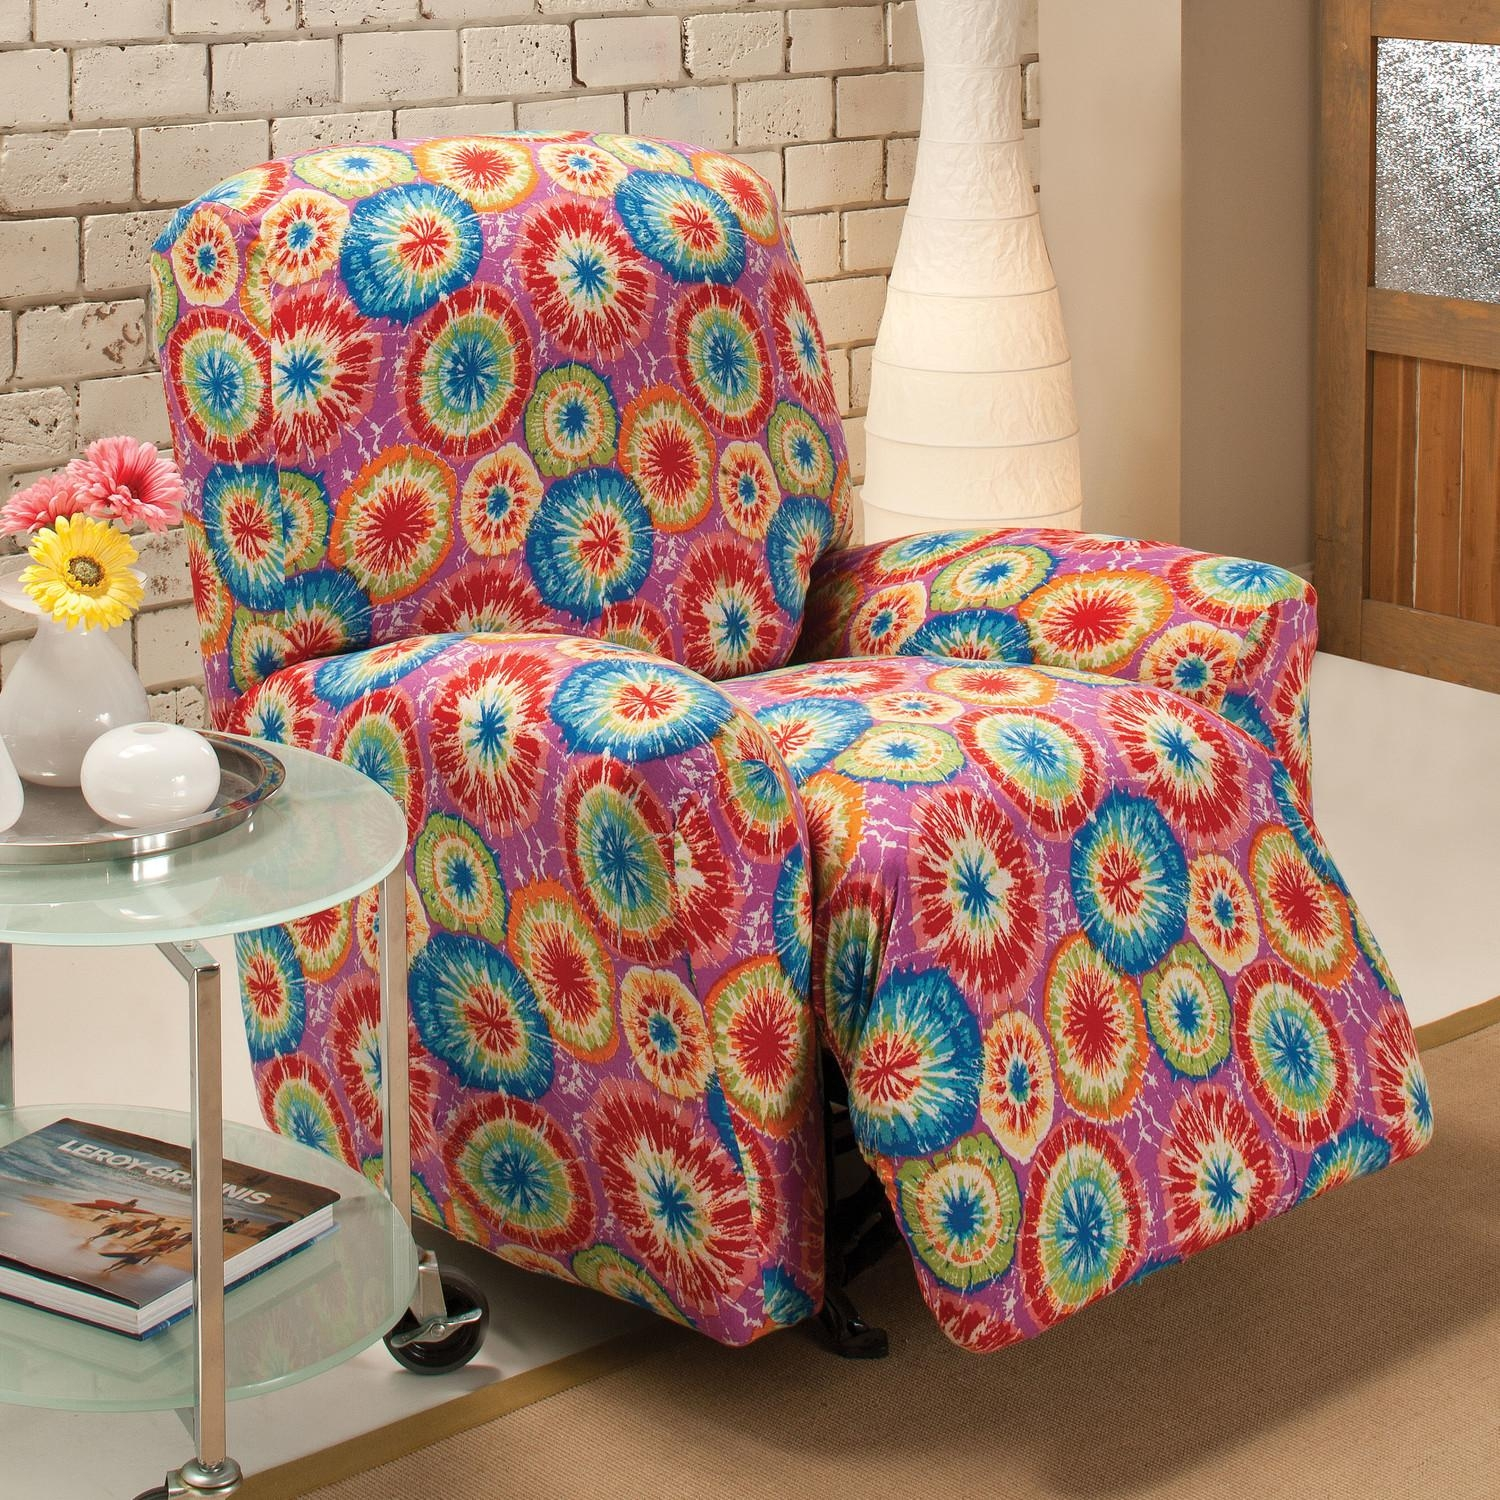 Decorating: Beautiful Decorative Floral Slipcovers For Recliners Within Floral Slipcovers (View 15 of 20)